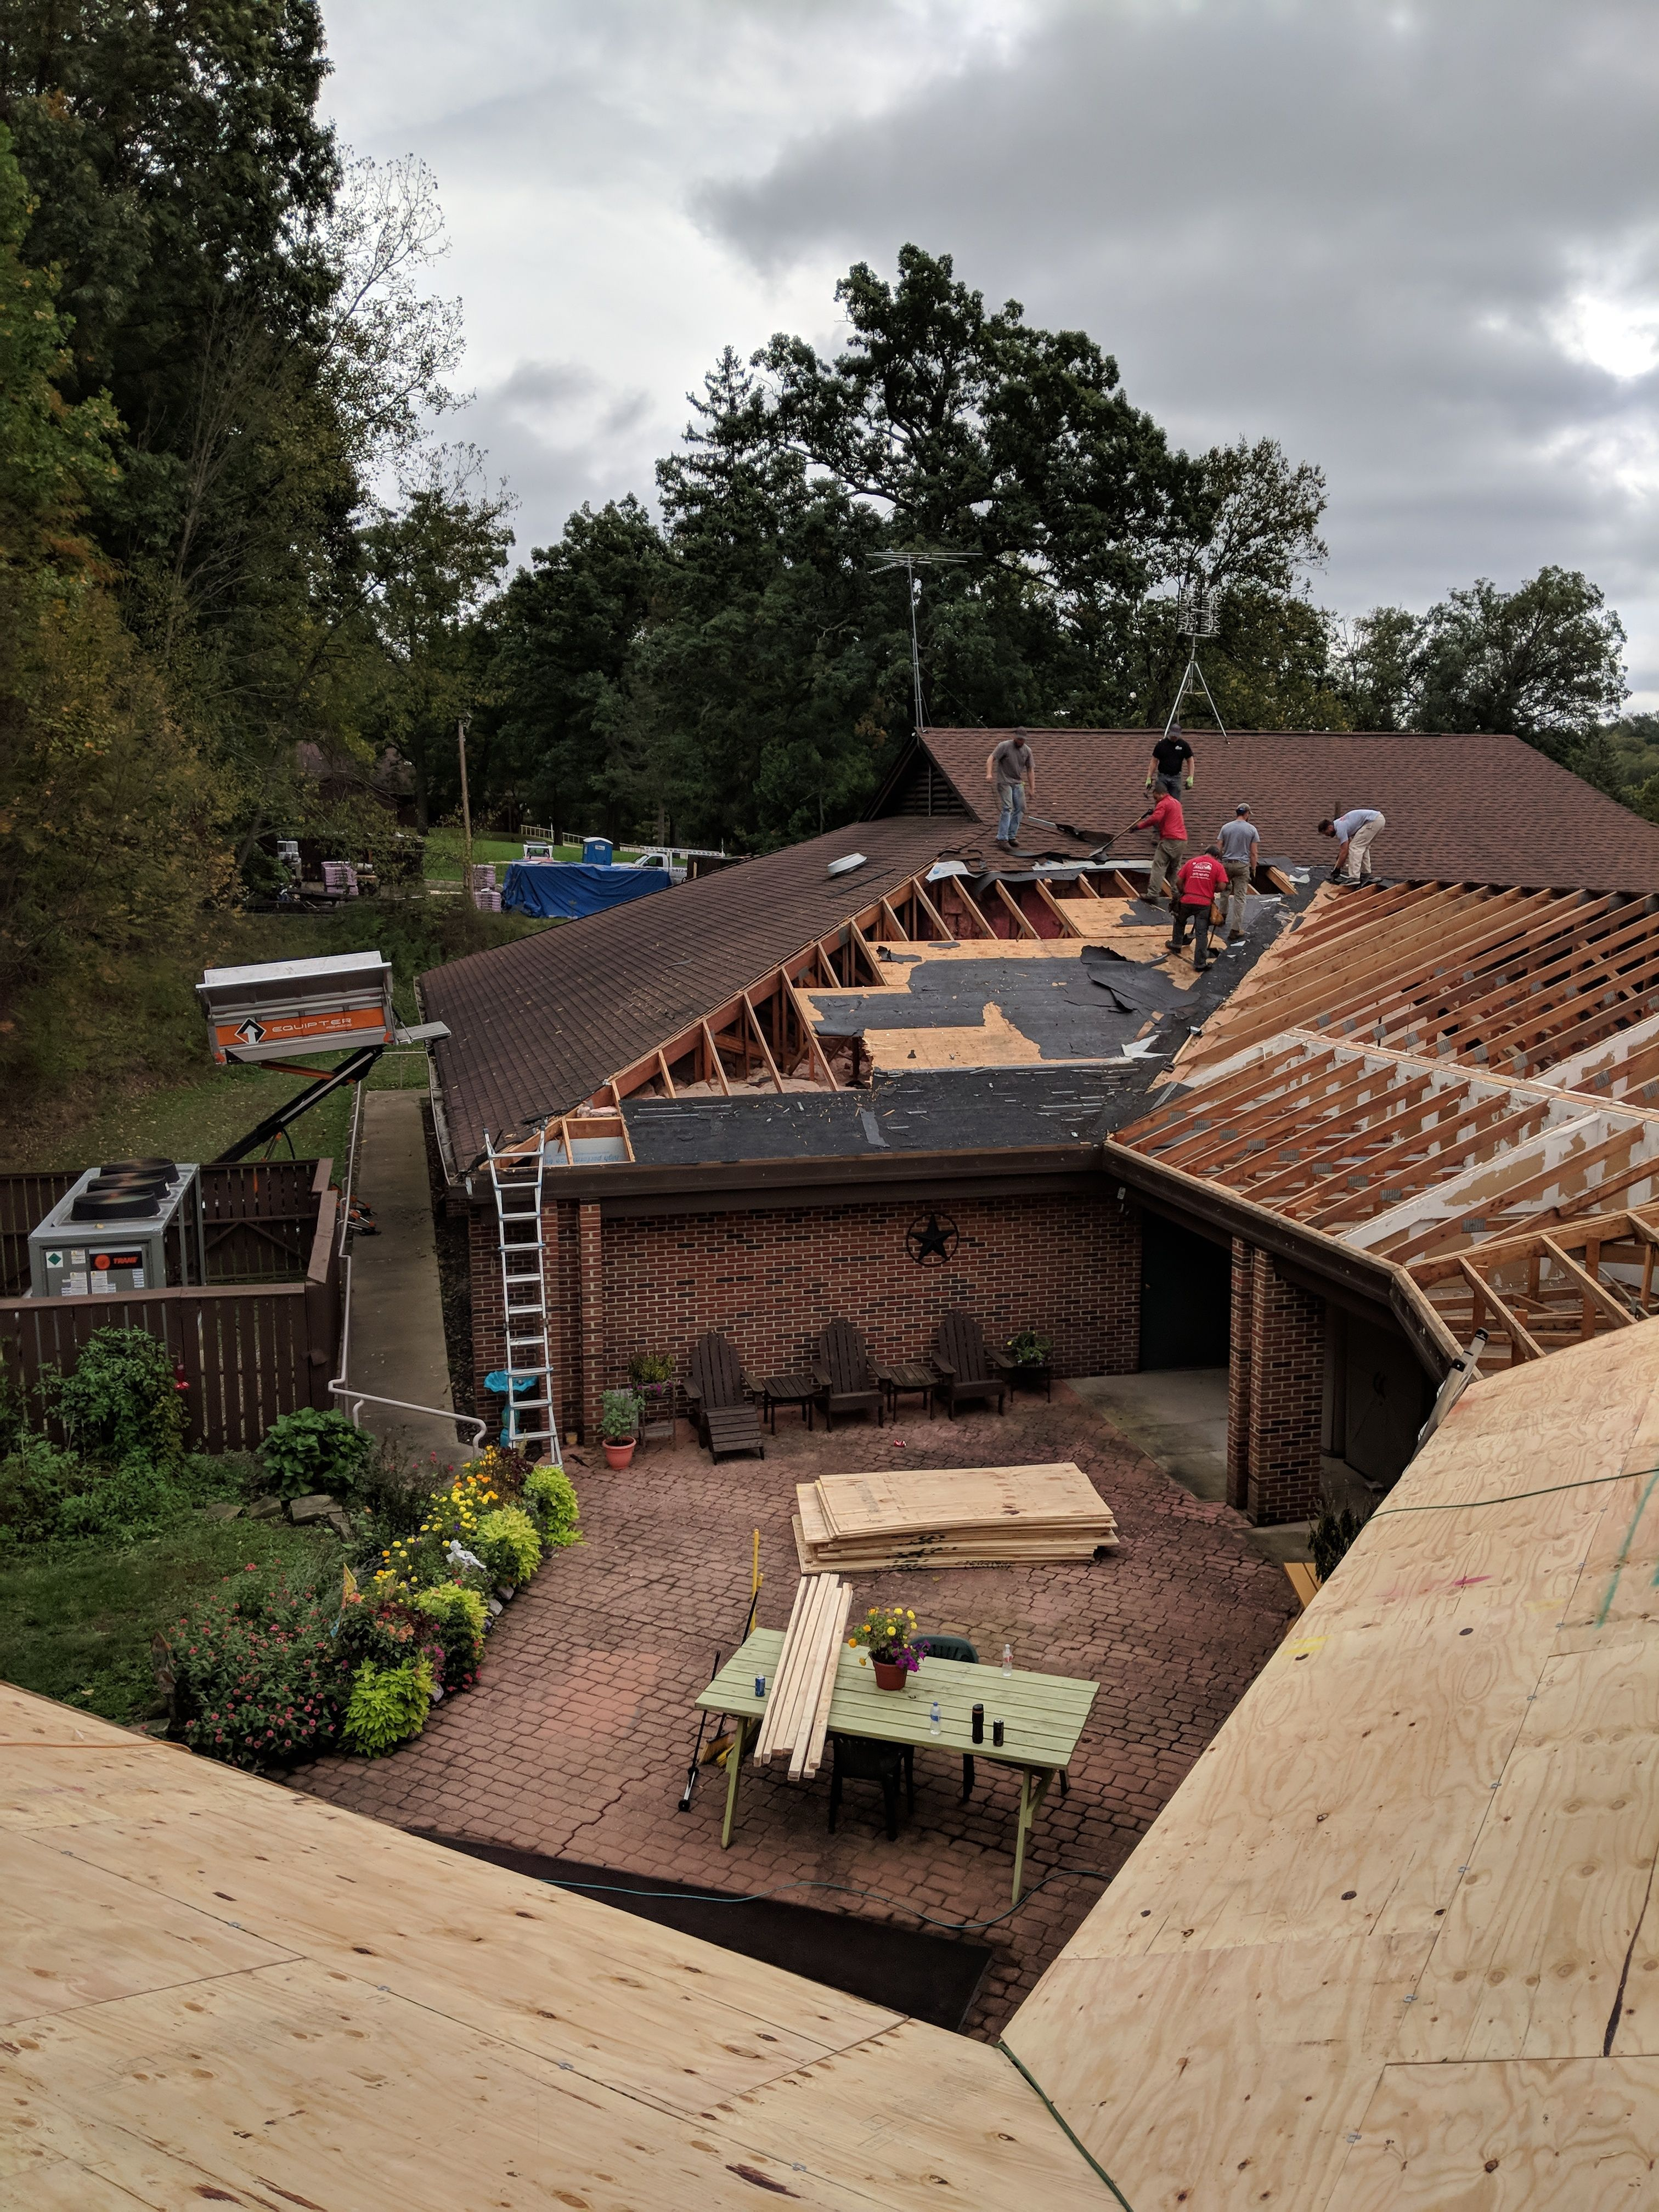 We Love Our Roofing Crews At Allstate Exteriors They Can Complete Most Roofing Jobs In One Day Quality Crews Make Roofing Jobs Outdoor Furniture Sets Roofing